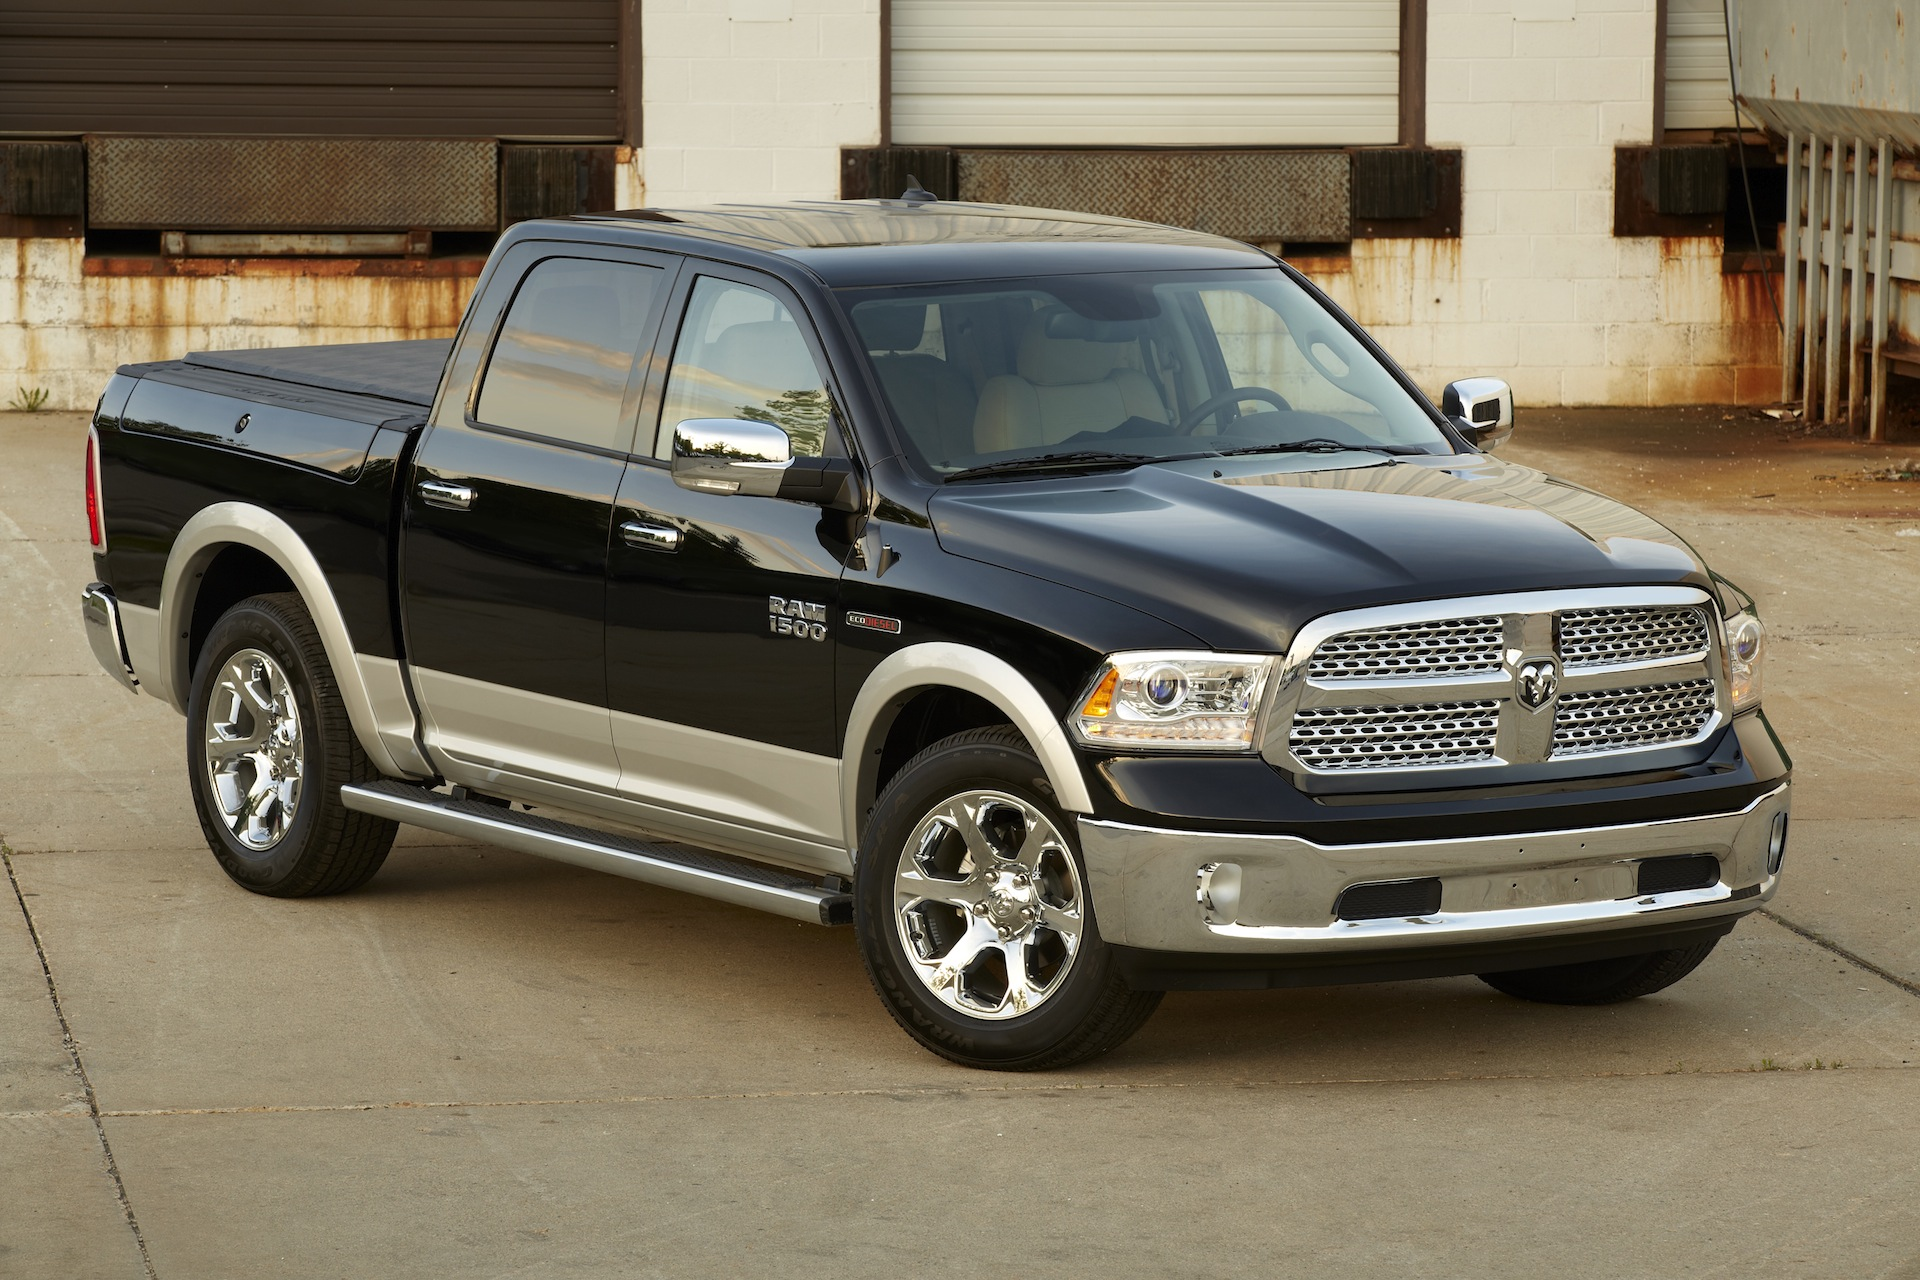 2014 Ram 1500 Ecodiesel Uses Maserati Engine Trivia Today